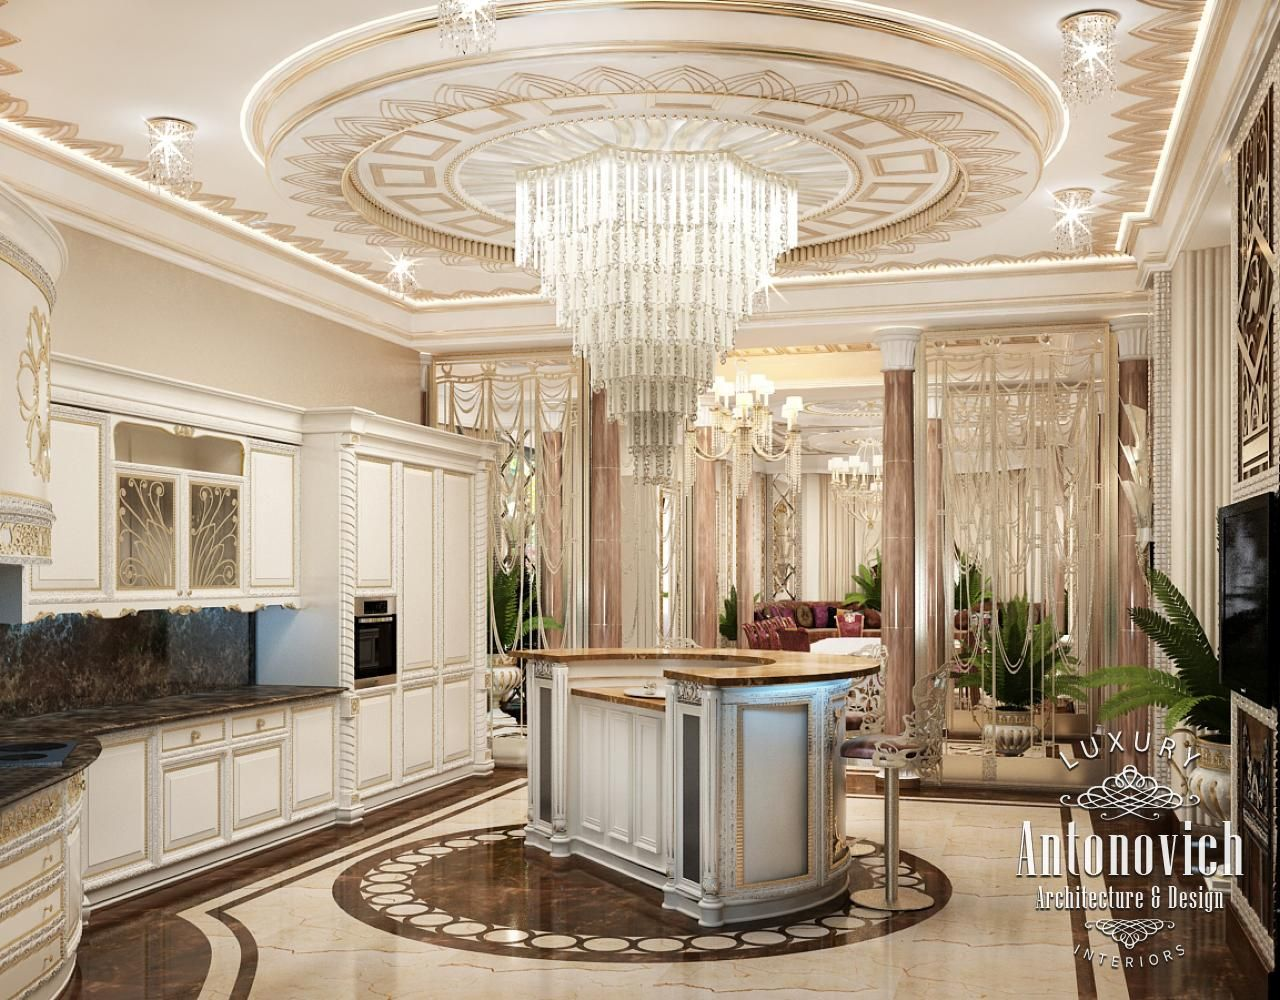 Luxurious Kitchen Designs Kitchen Design In Dubai Luxury Kitchen & Dining Photo 7